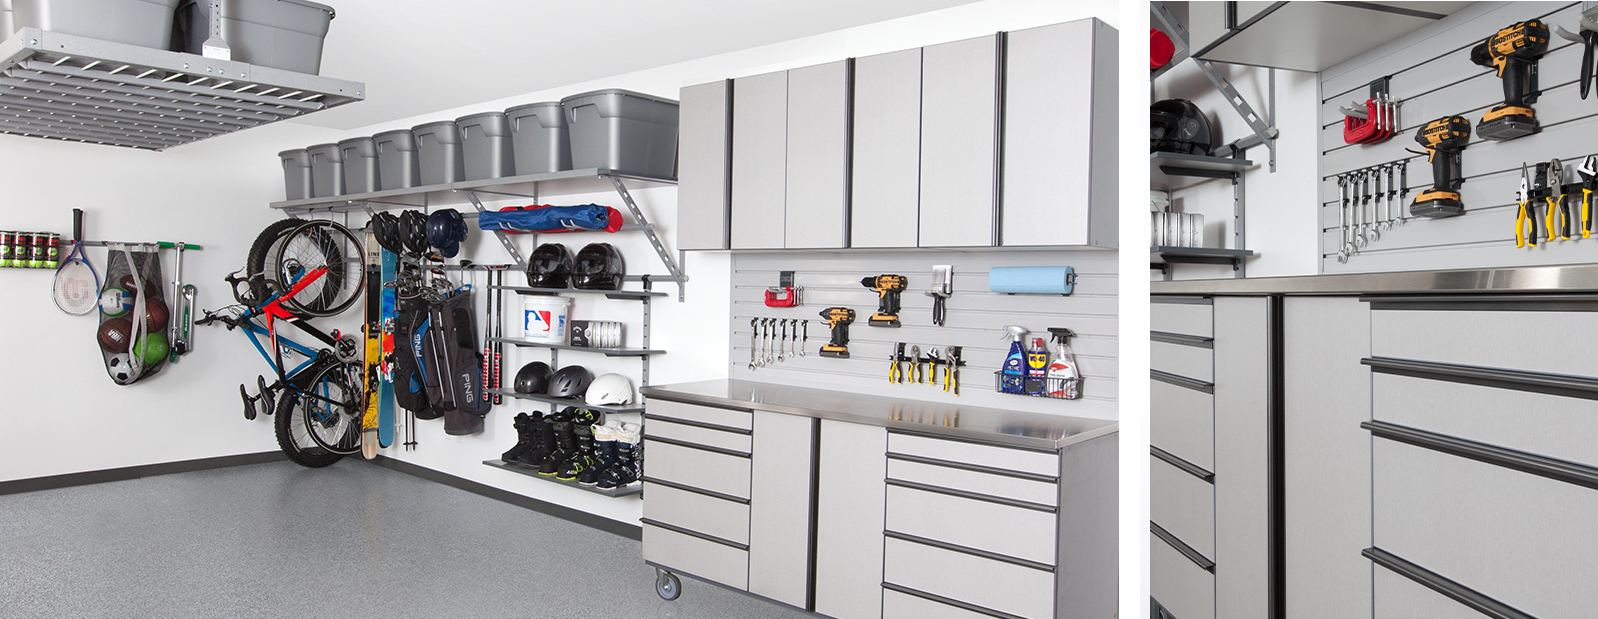 Garage Storage Solutions The Garage Authority